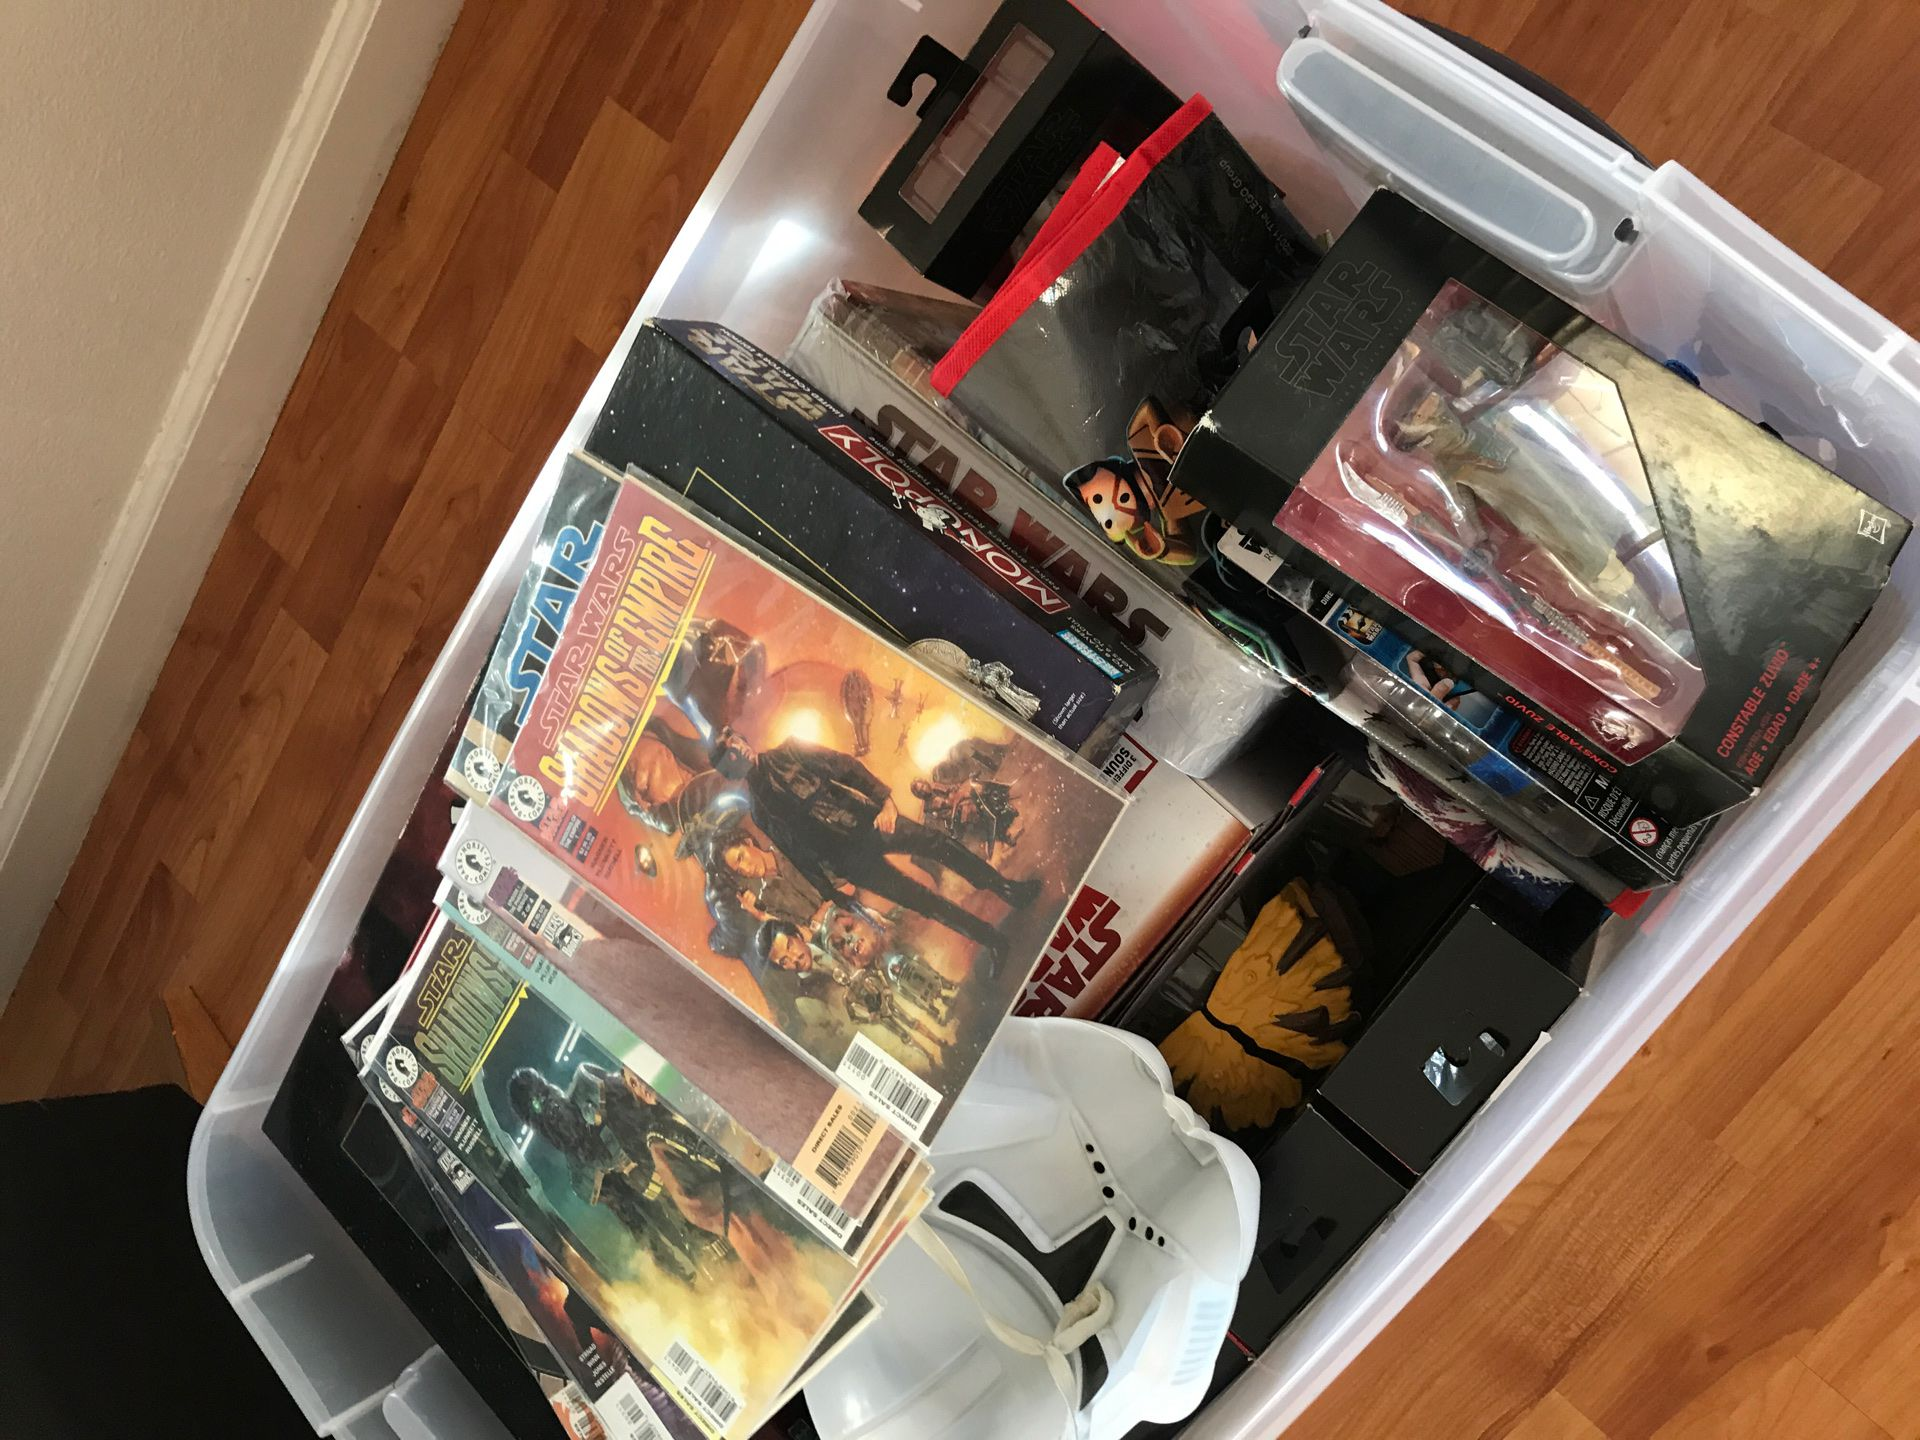 NOT FREE. Read description Star Wars collectibles. serious inquires message me for items and pricing